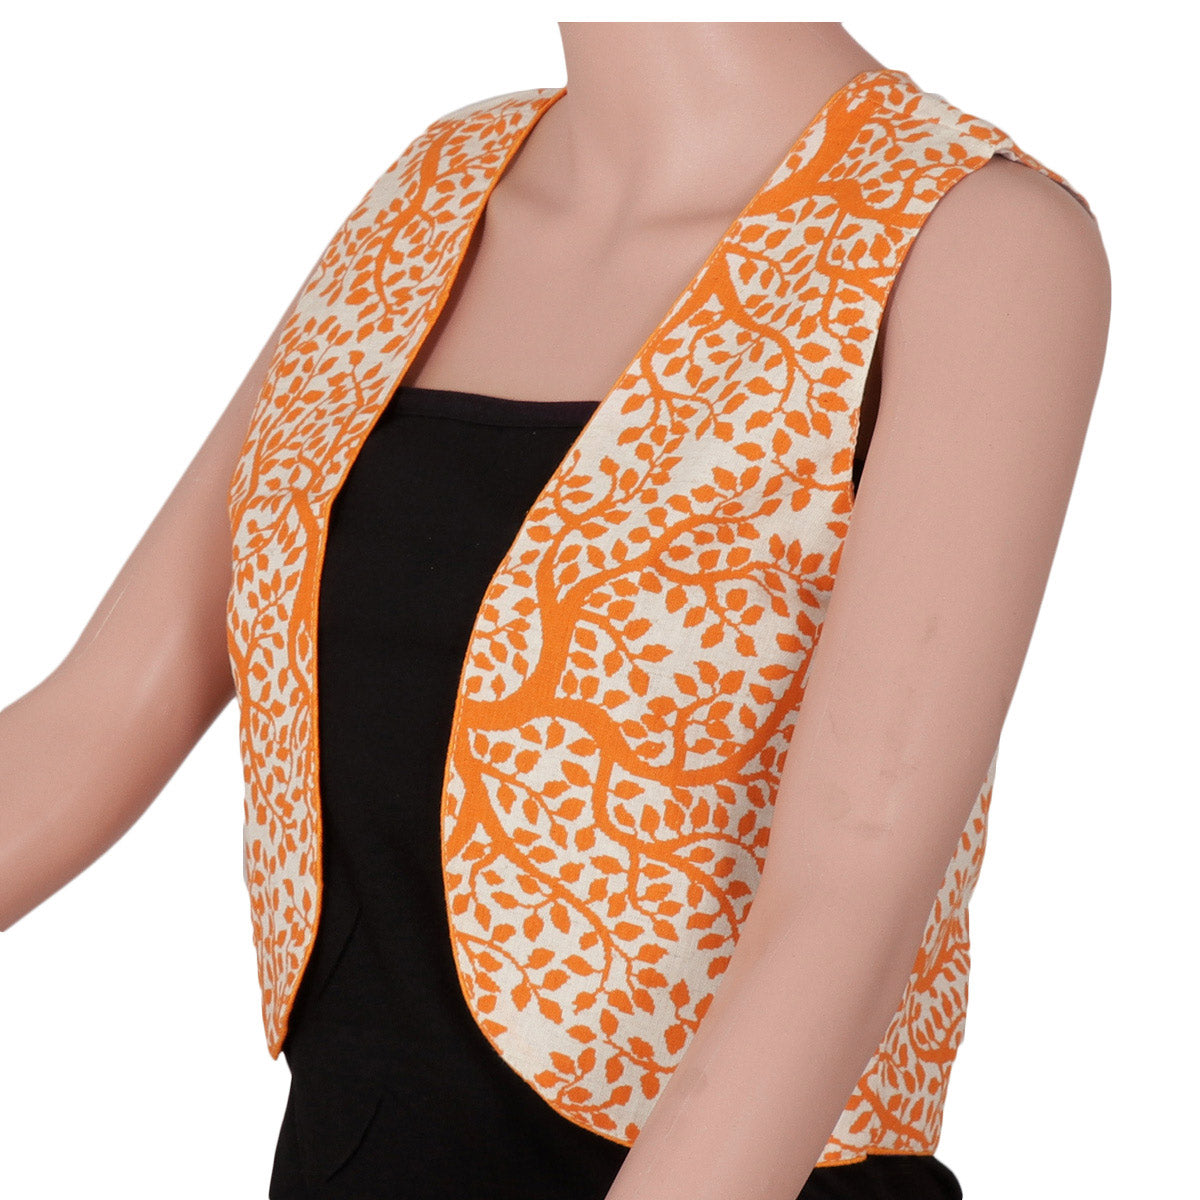 Cotton jacket Beige and Orange with leaf design